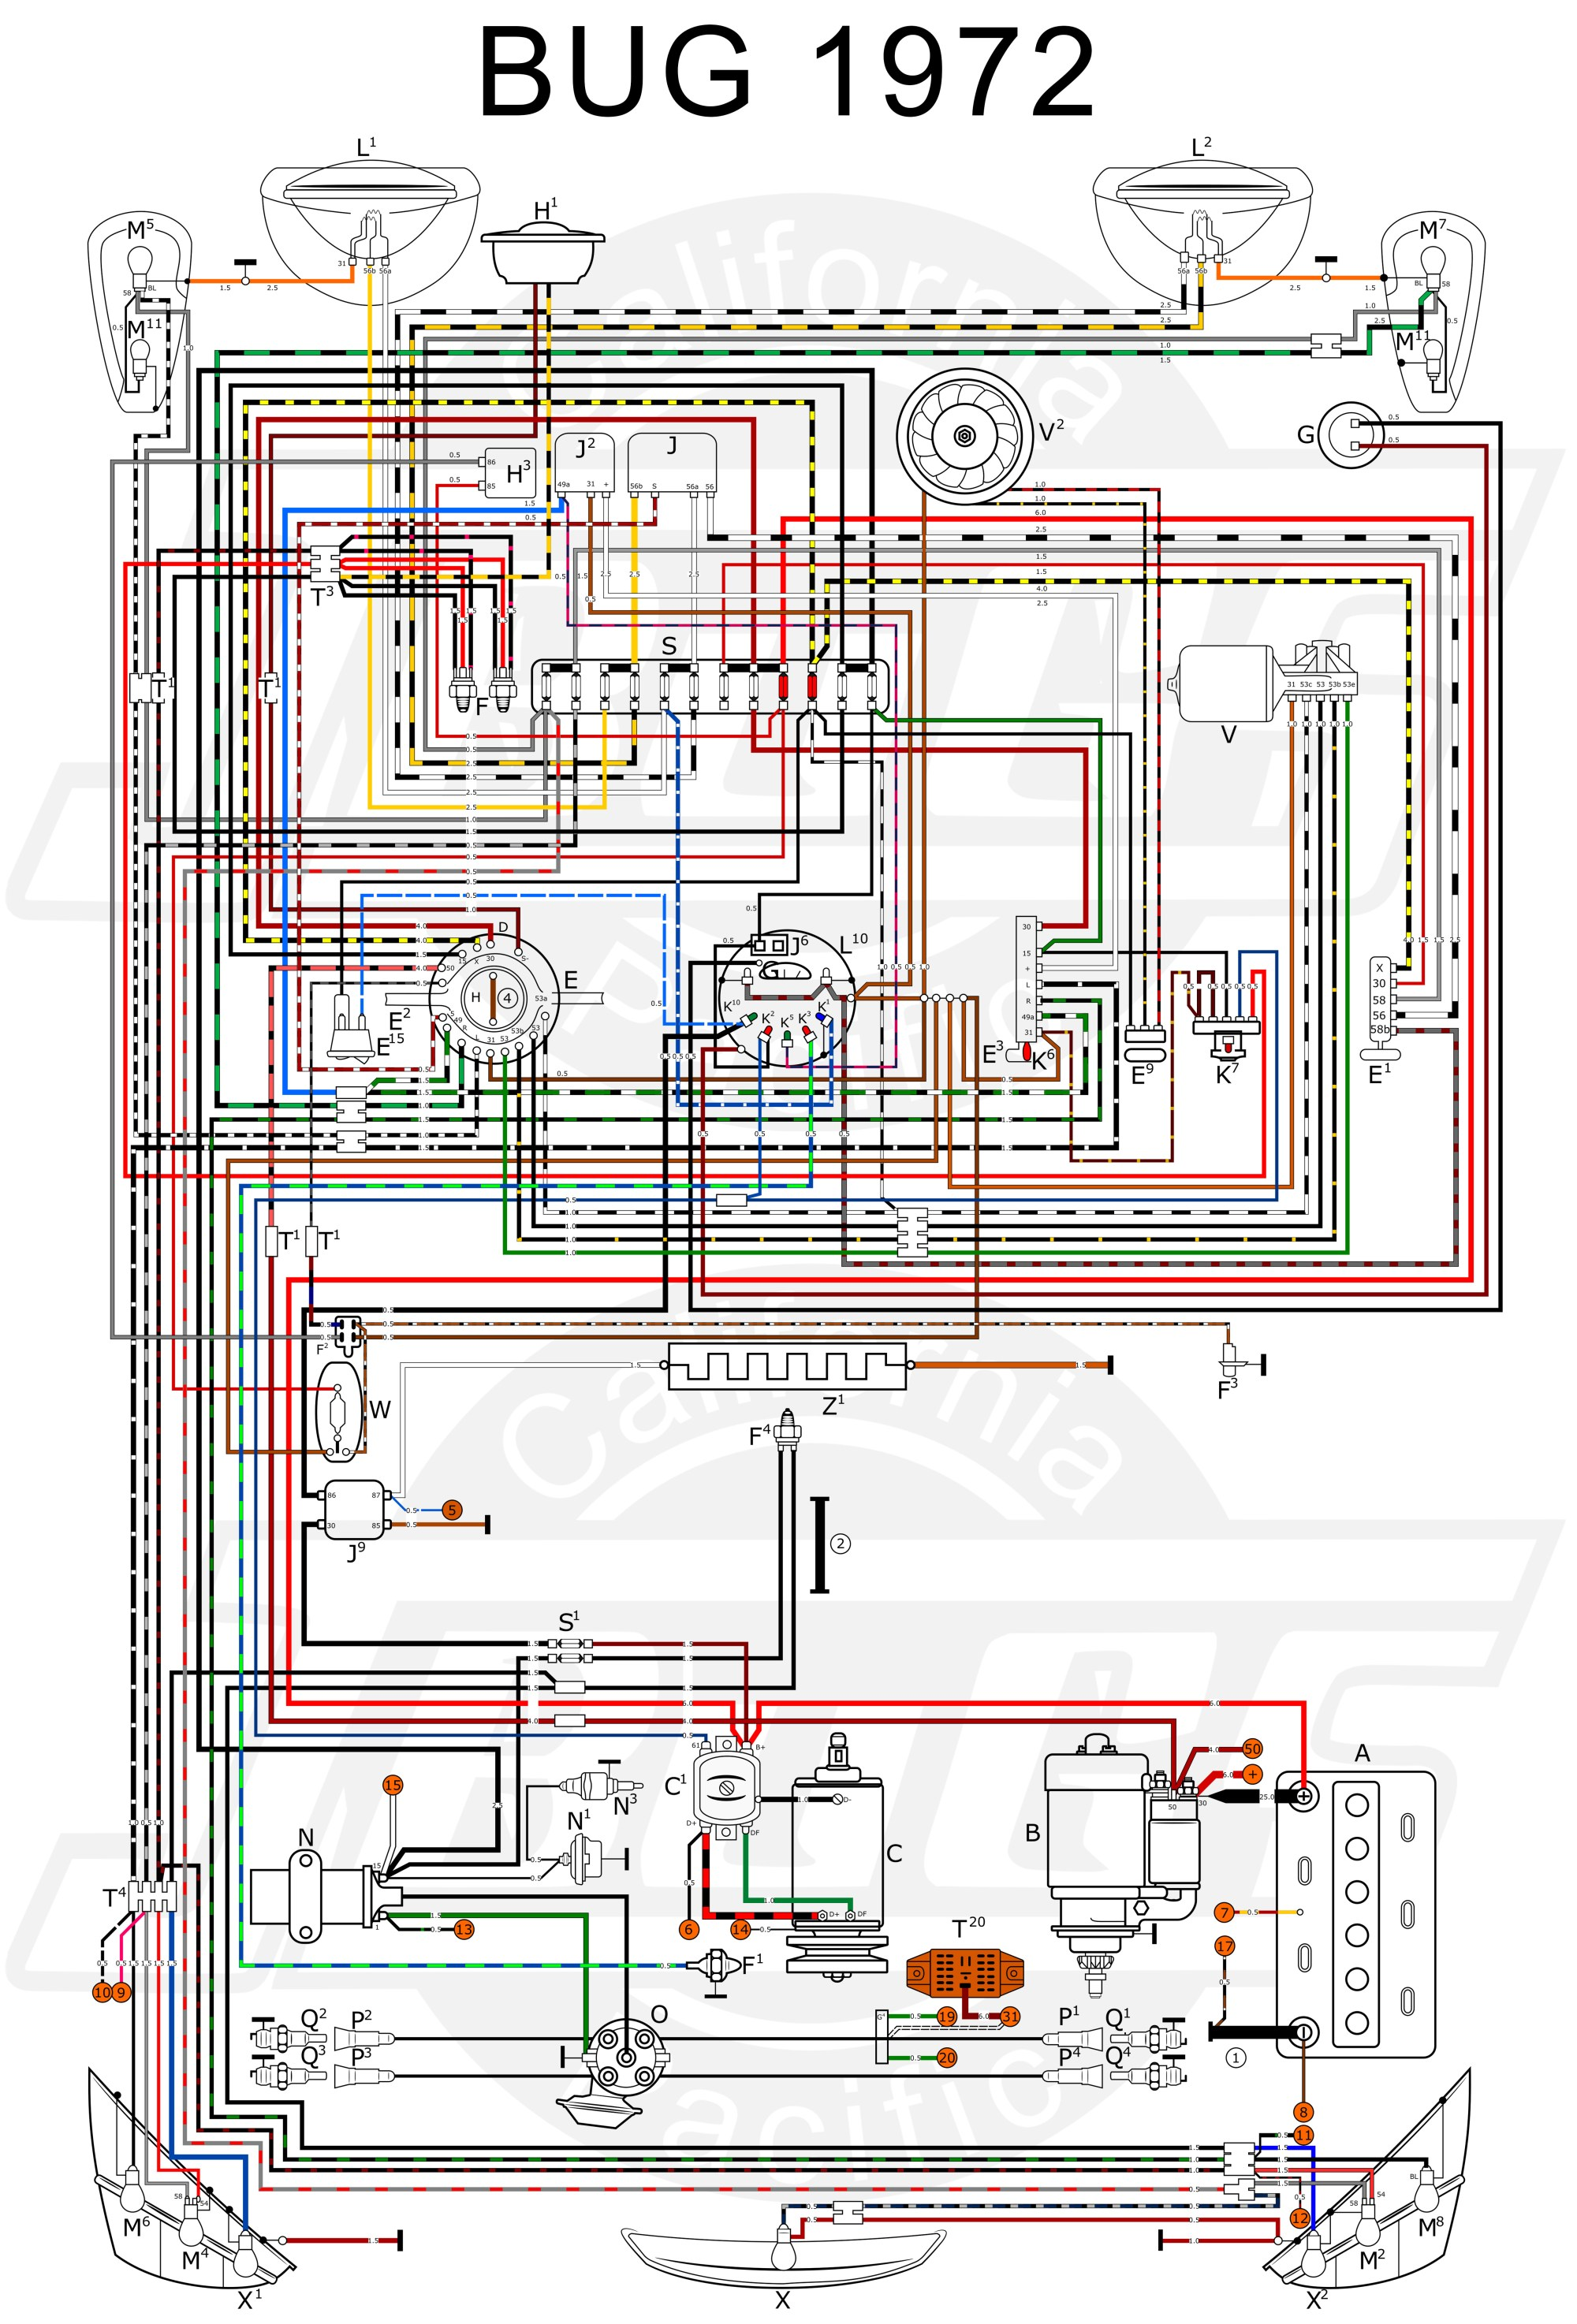 hight resolution of 1976 vw wiring diagram car wiring diagrams explained u2022 rh ethermag co vw beetle electrical wiring